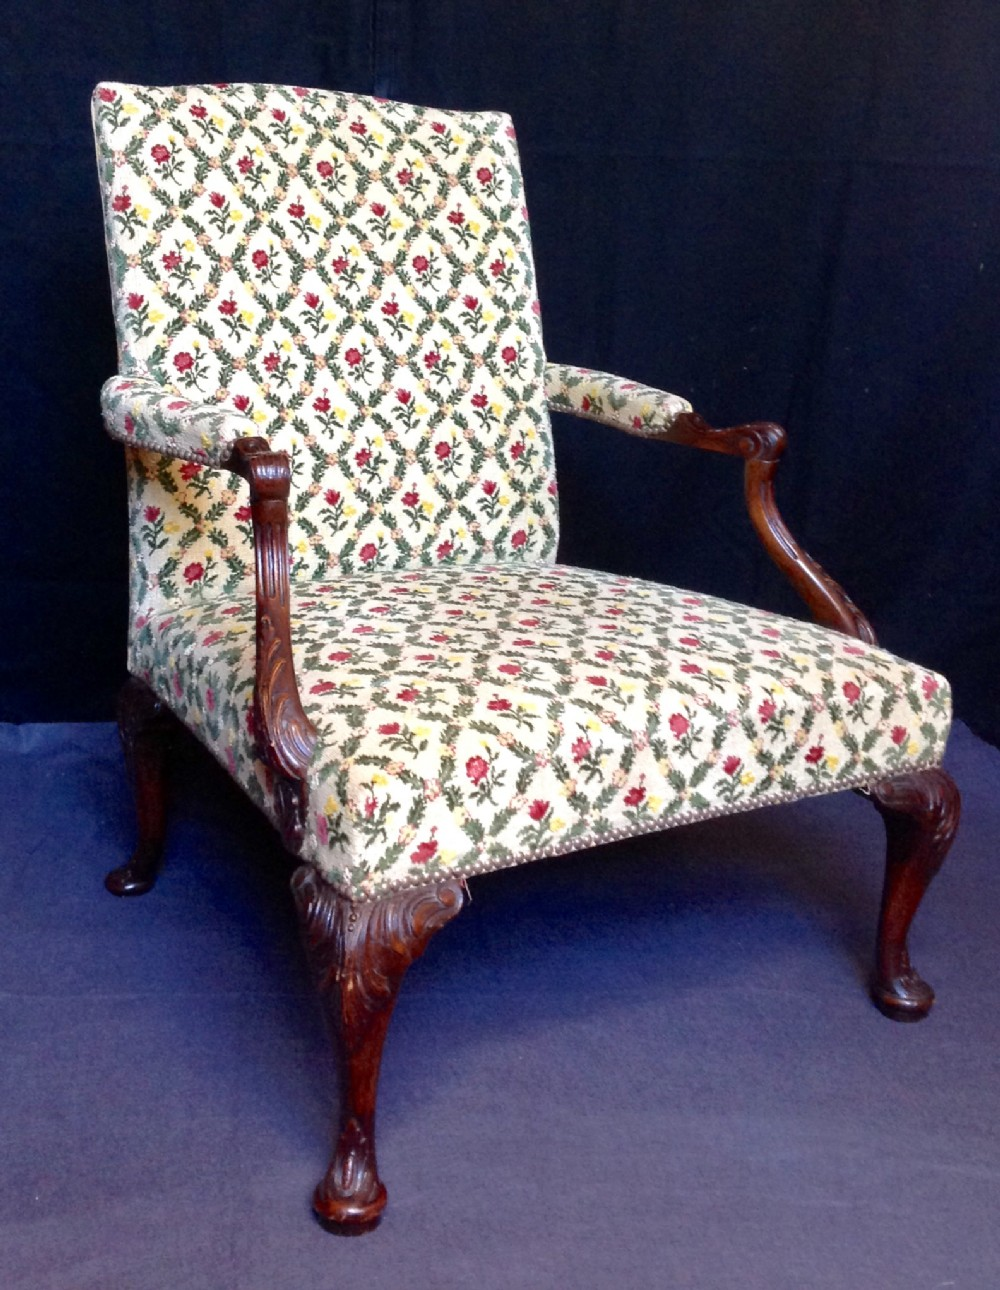 19th century mahogany gainsborough chair